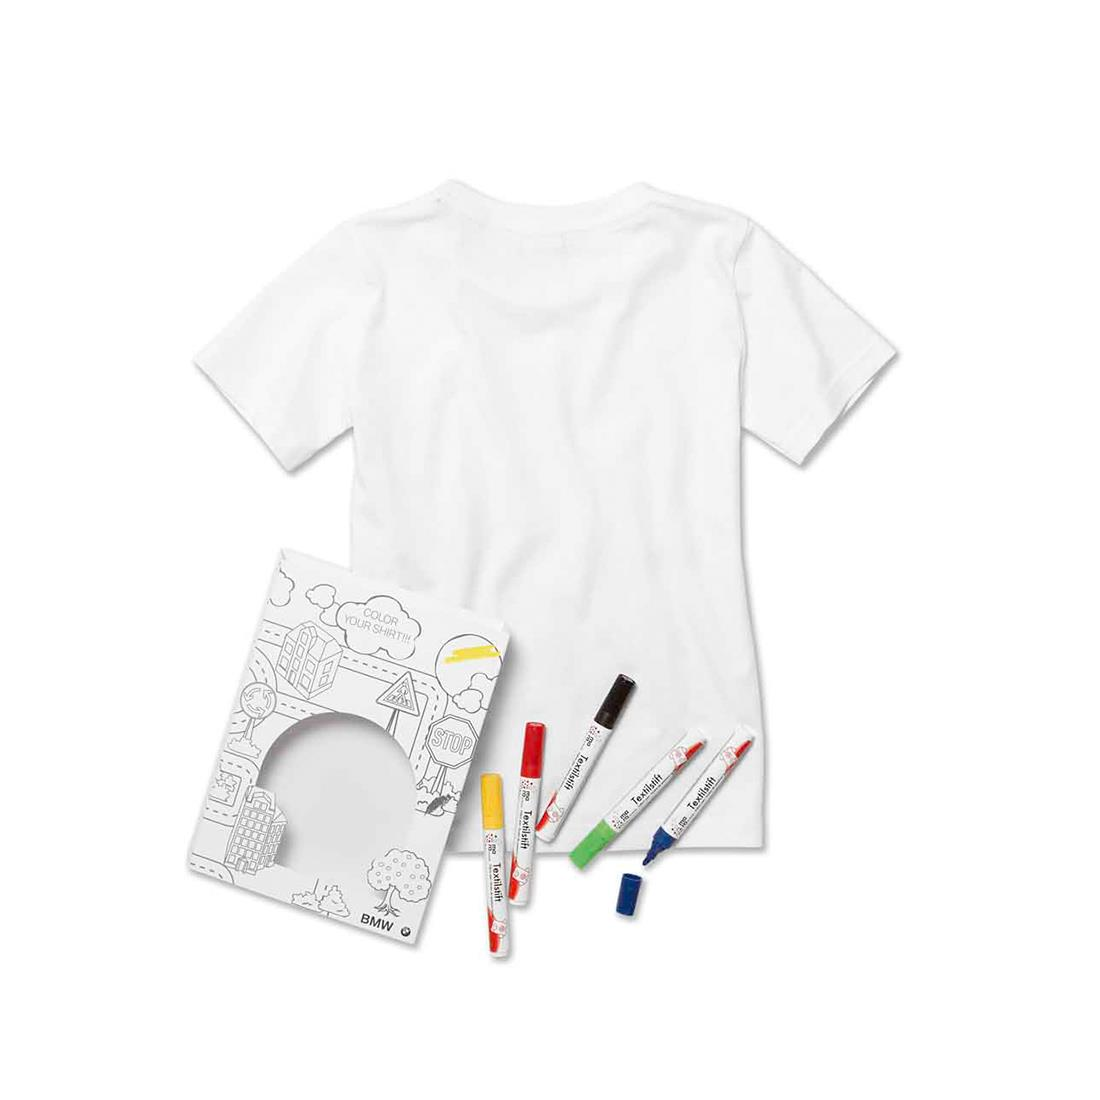 BMW T SHIRT INTERACTIVE KIDS